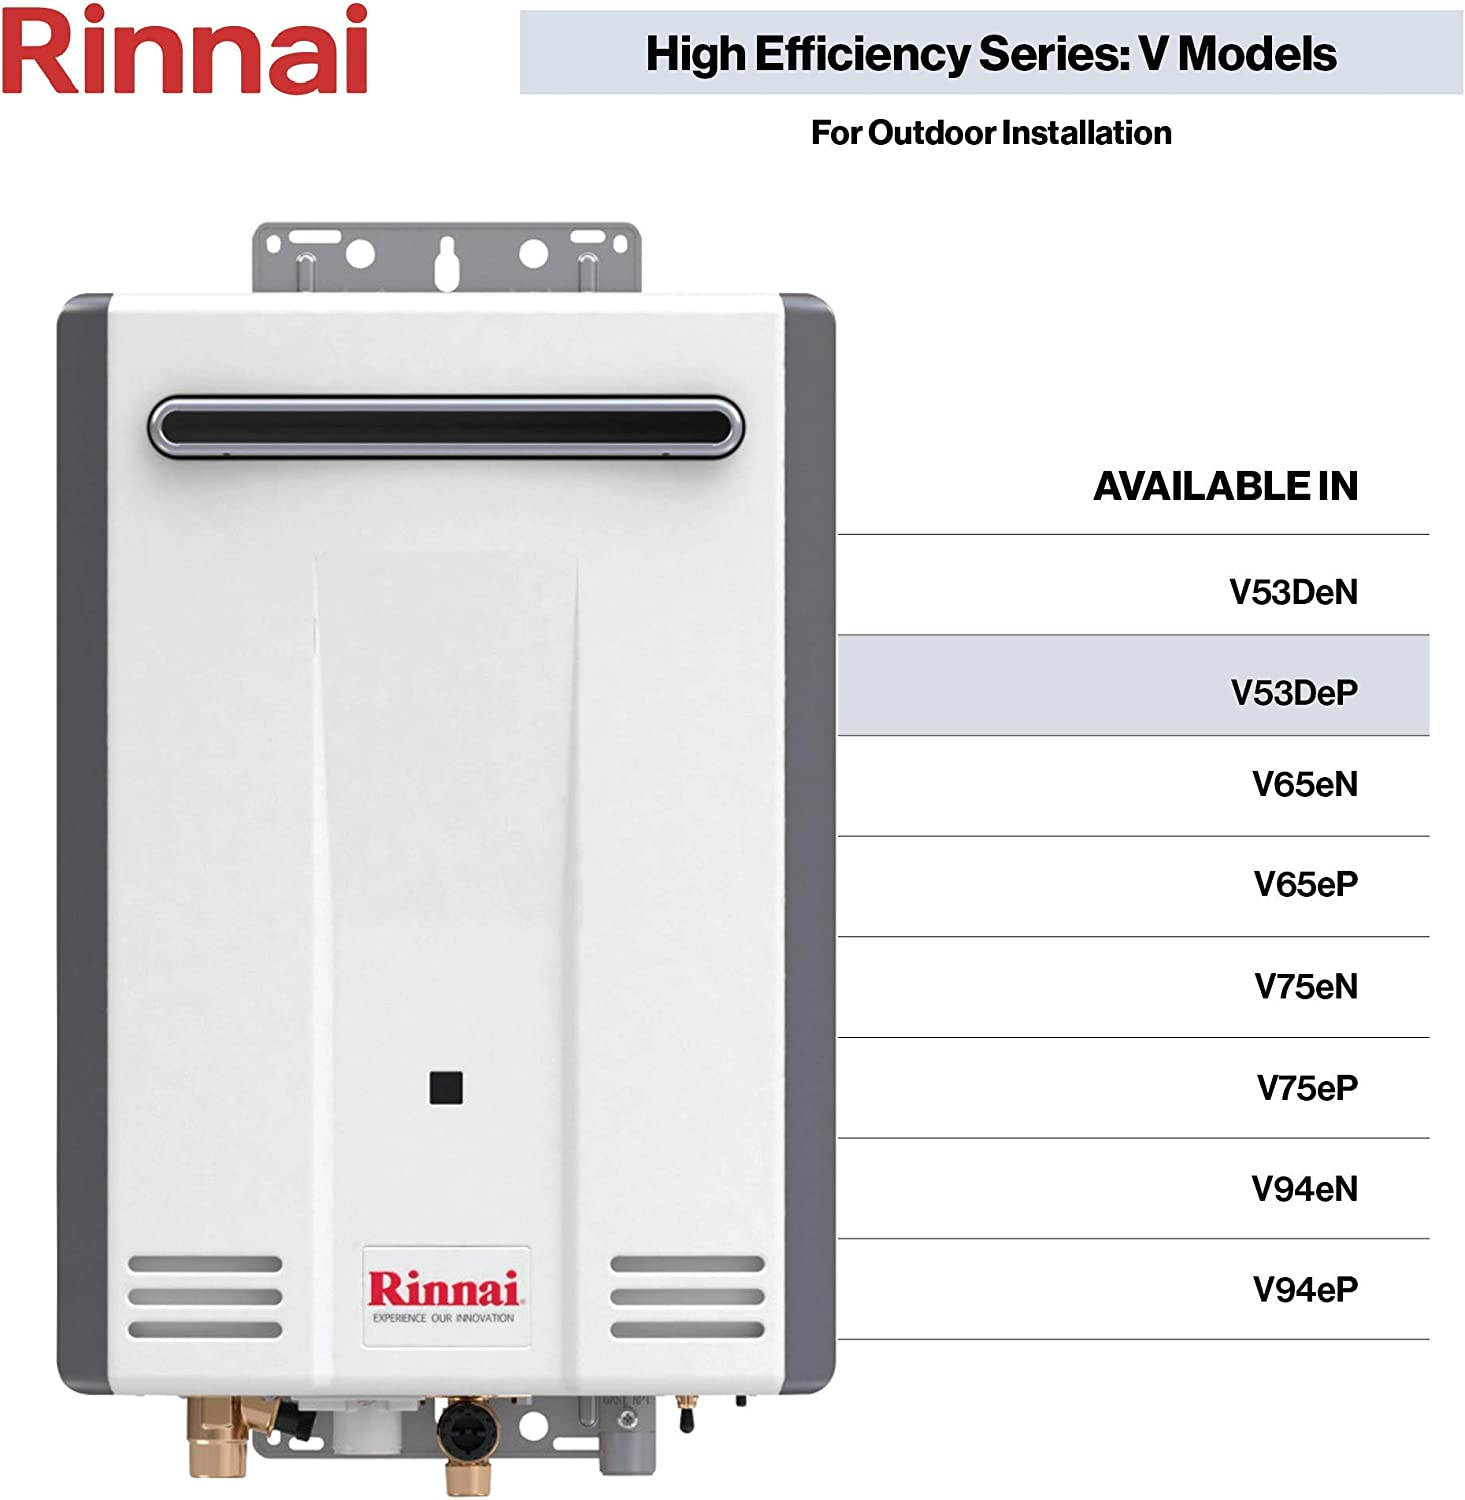 Rinnai V Series HE Tankless Hot Water Heater: Outdoor Installation Featured Image